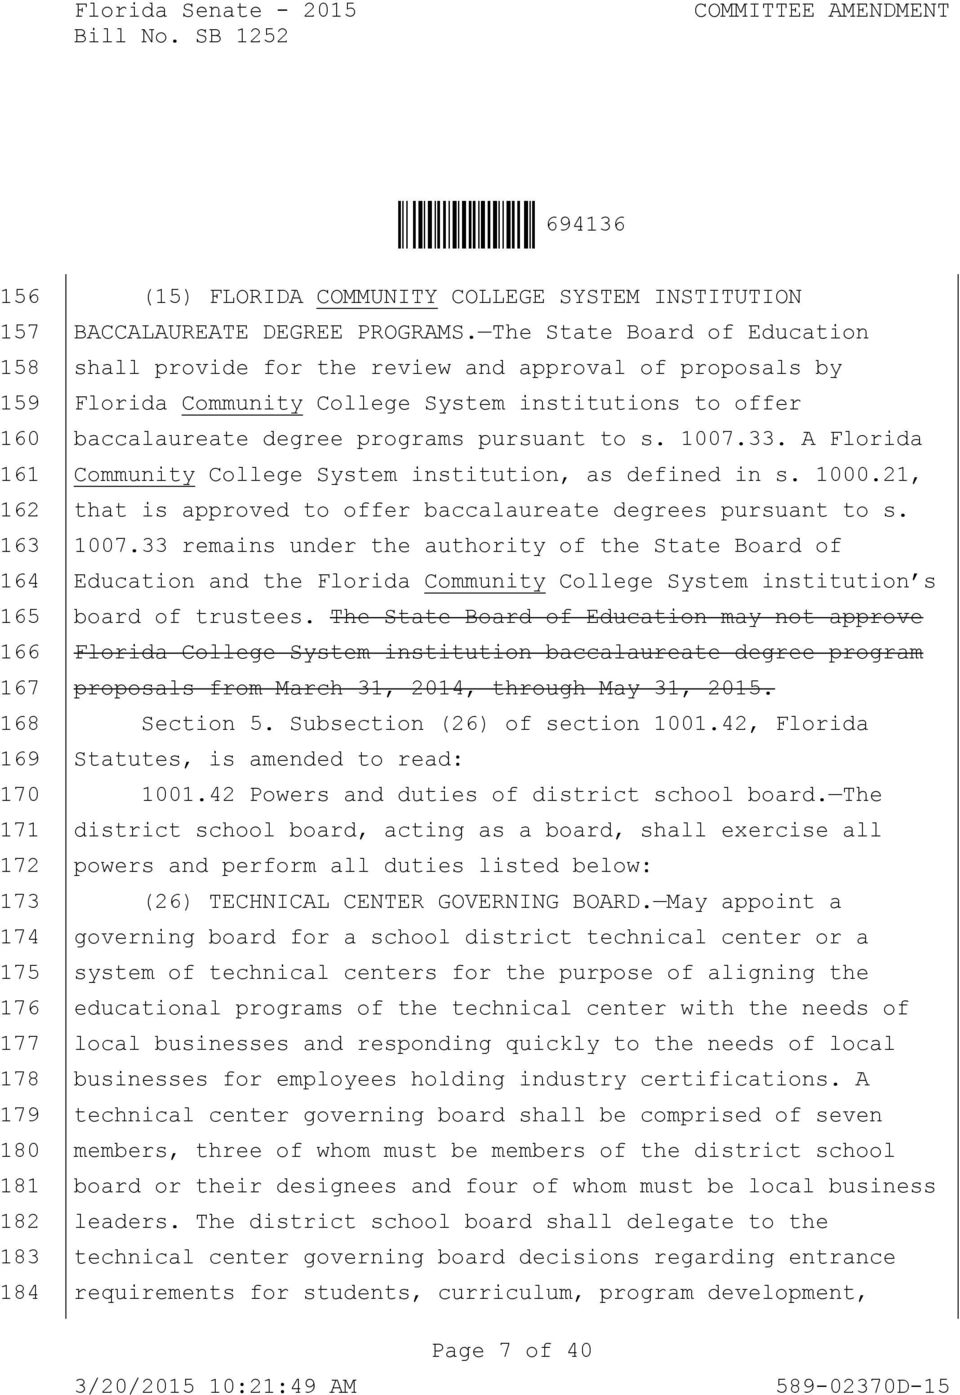 A Florida Community College System institution, as defined in s. 1000.21, that is approved to offer baccalaureate degrees pursuant to s. 1007.